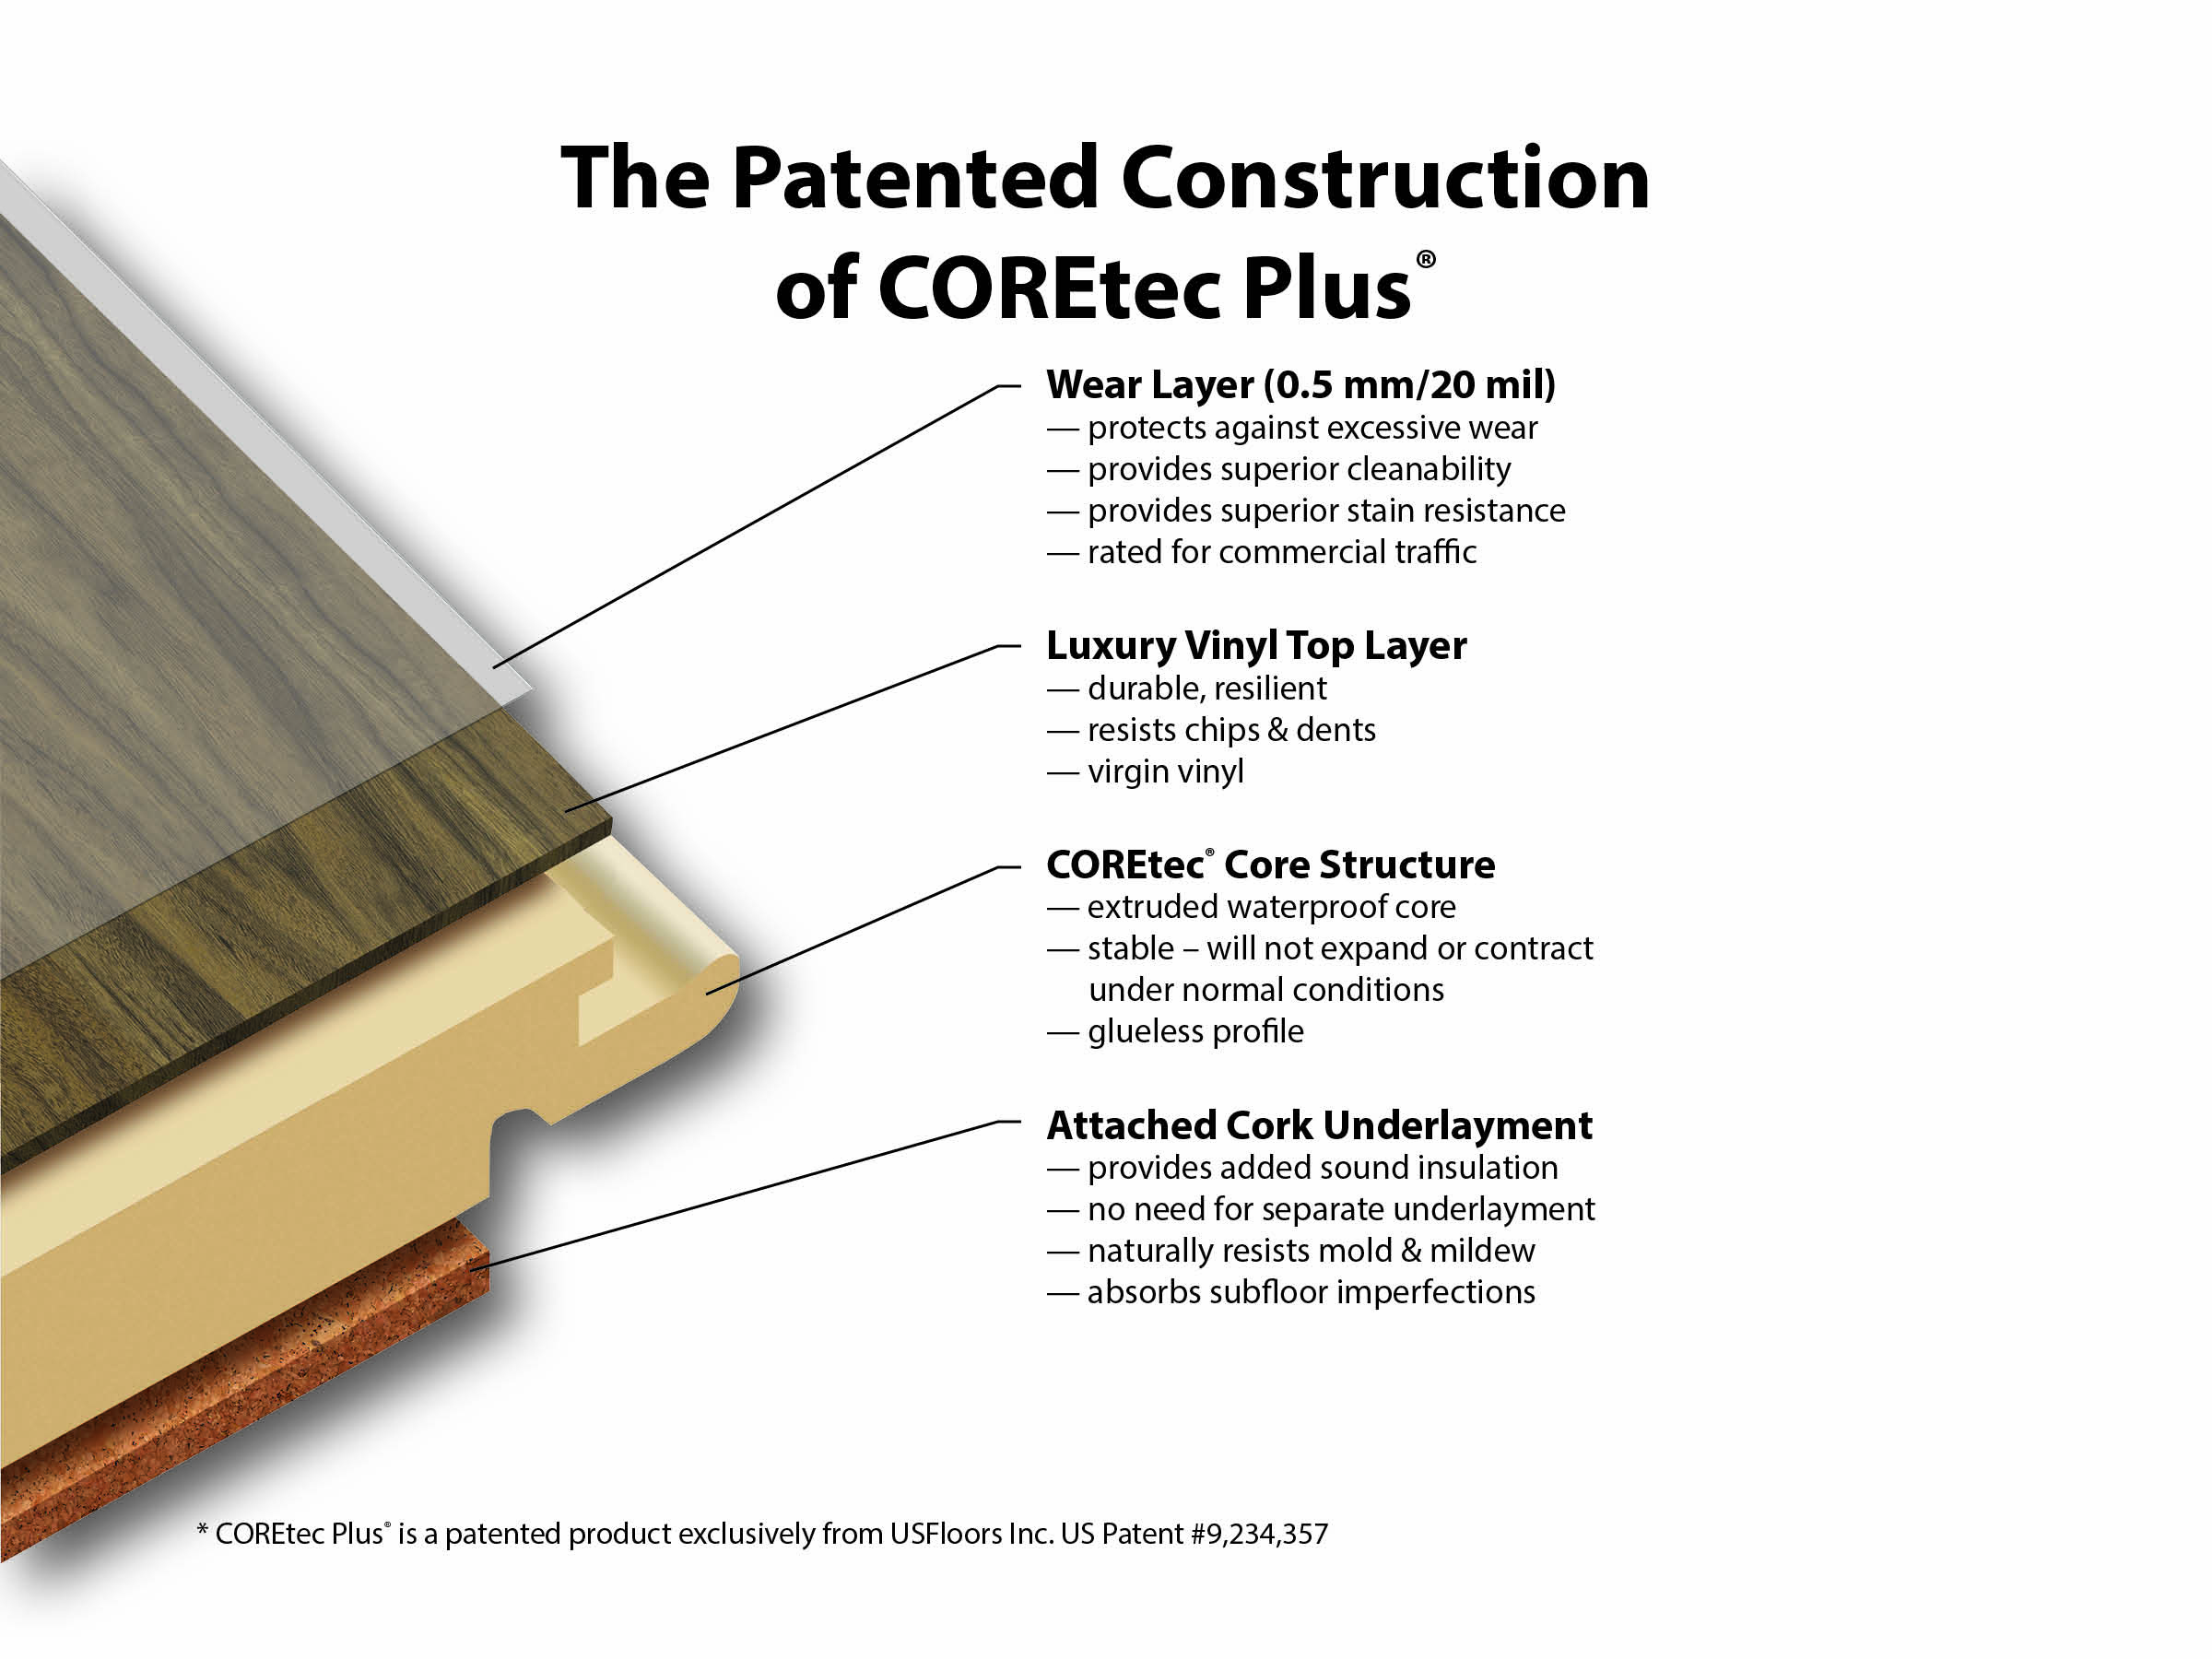 Why Coretec?